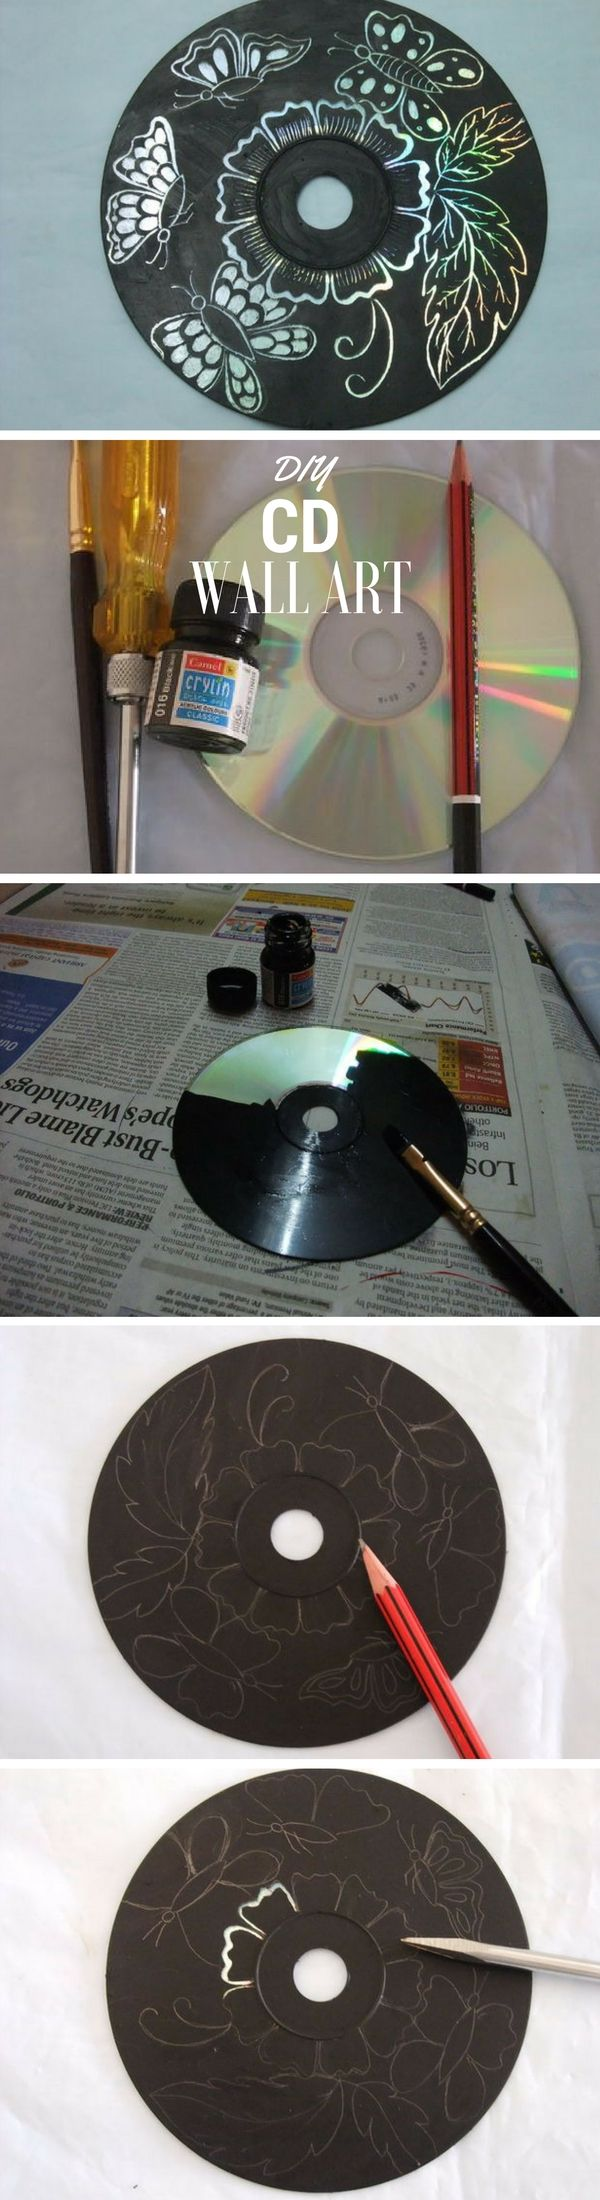 Check out how to make #DIY wall art form old CDs #HomeDecorIdeas #craft @istandarddesign